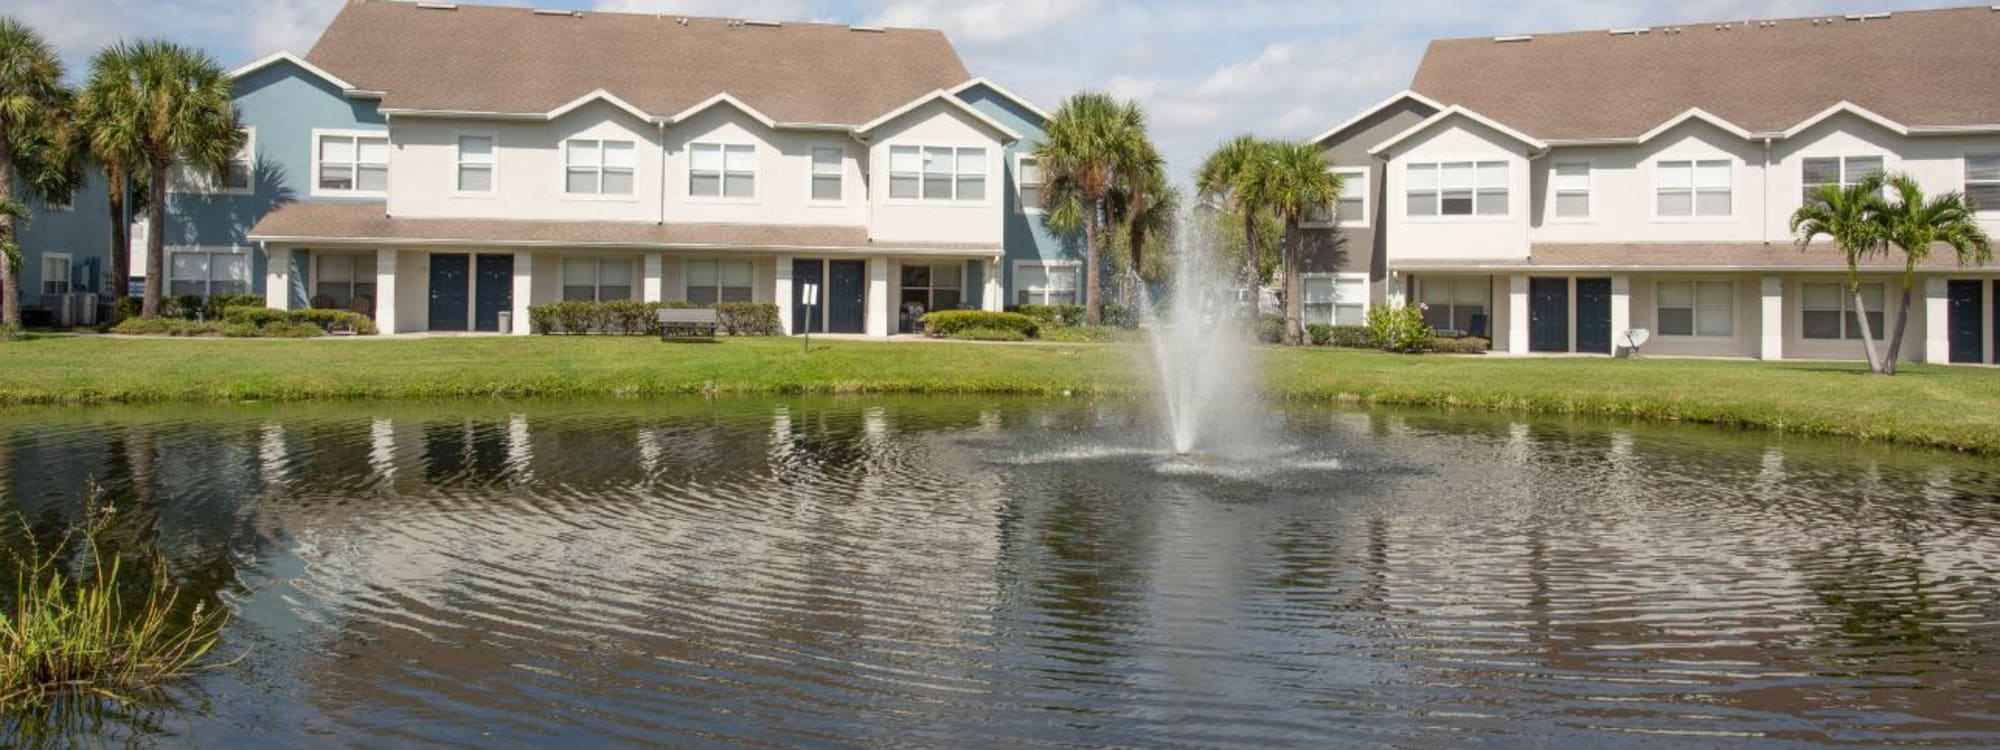 Calais Park Apartments's pet policy in St Petersburg, Florida